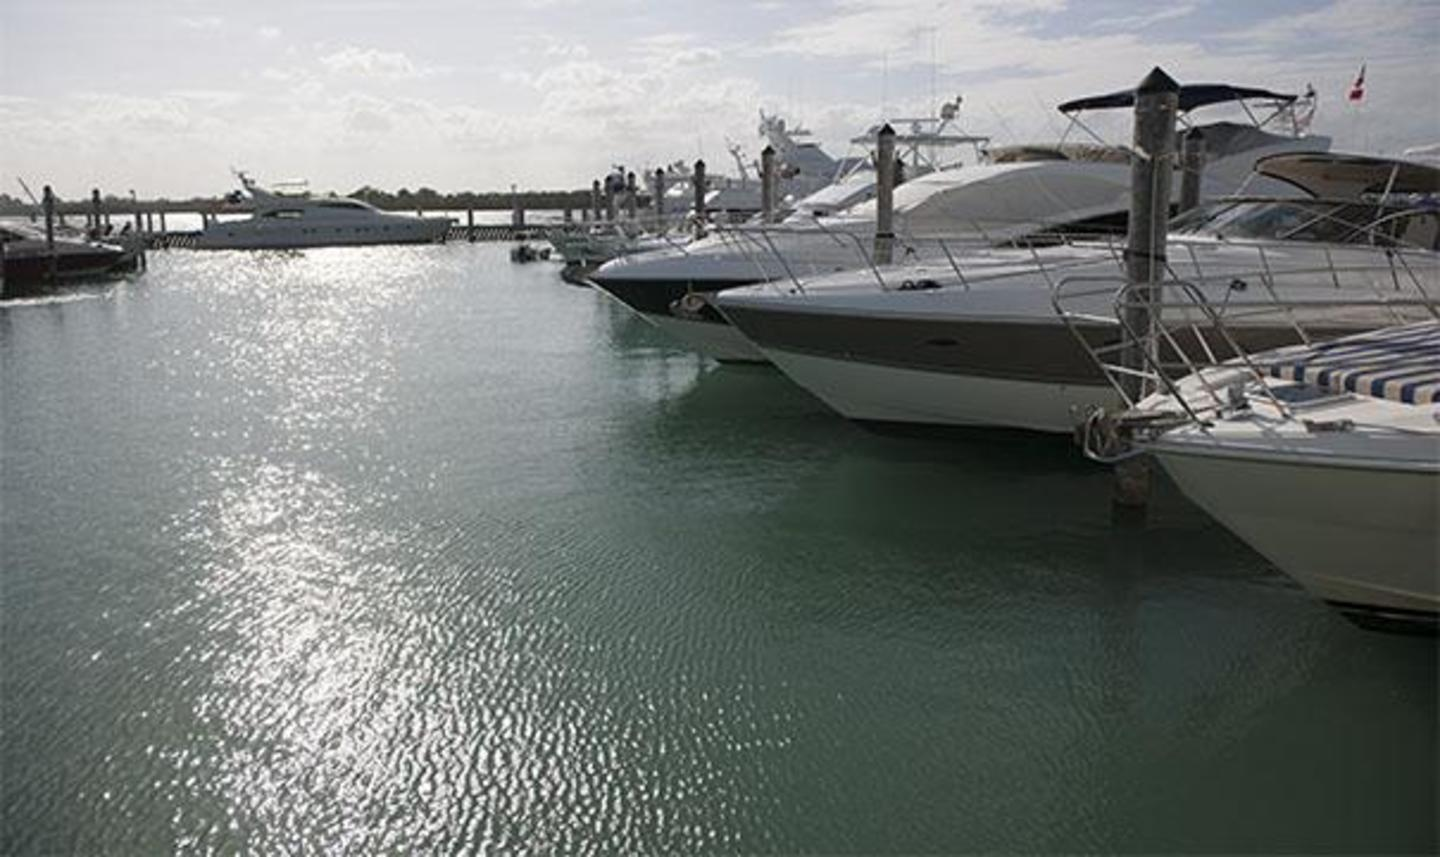 Boats at Bill Bird Marina at Haulover Park